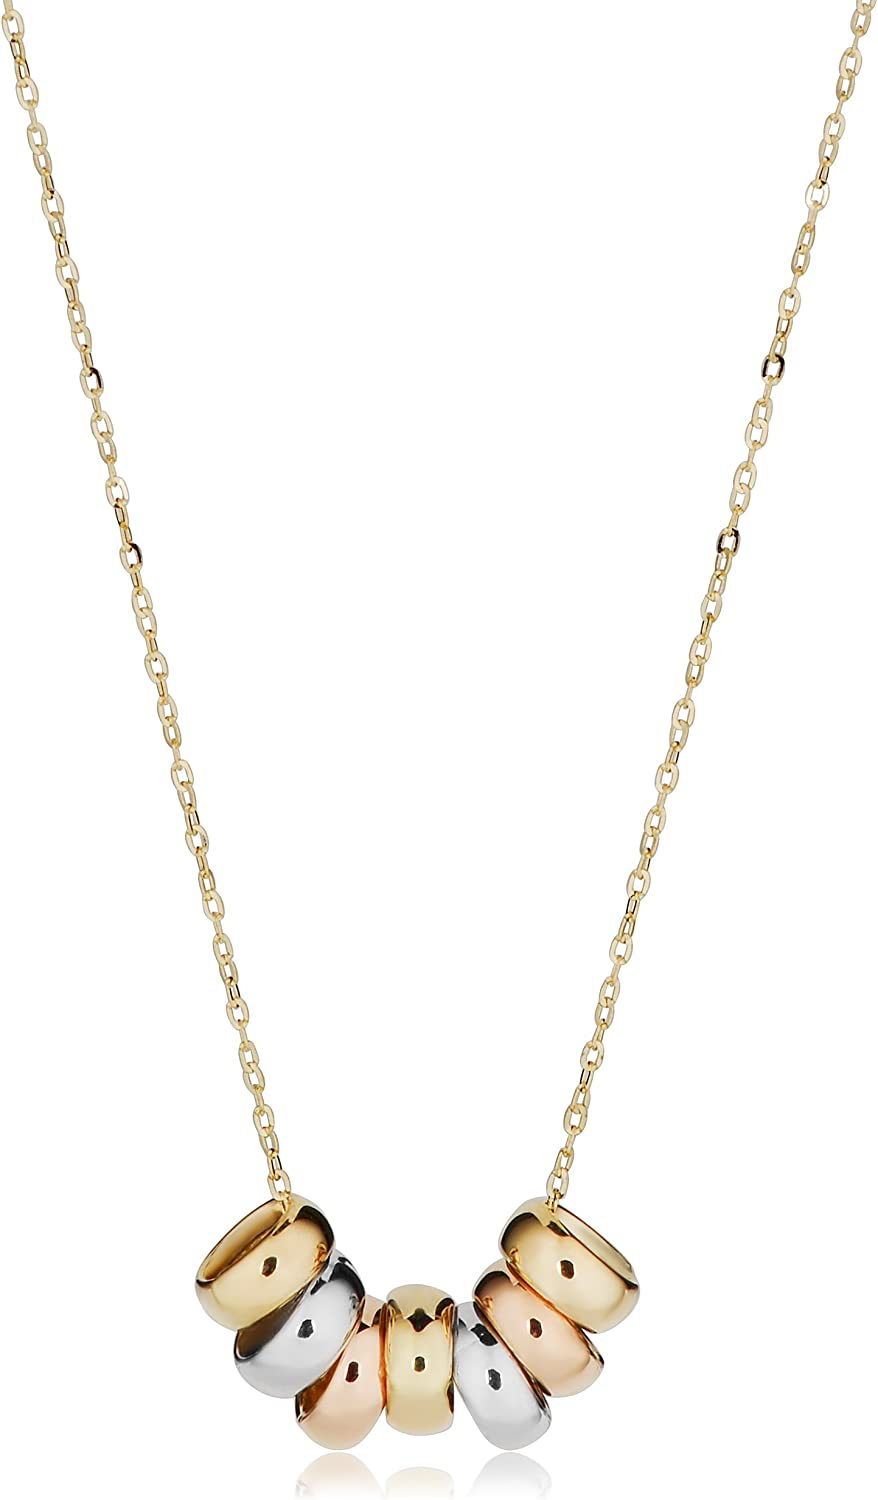 KoolJewelry 10k Tricolor Gold Seven Lucky Rings Necklace Minimalist Jewelry (adjusts to 17 or 18 inch)